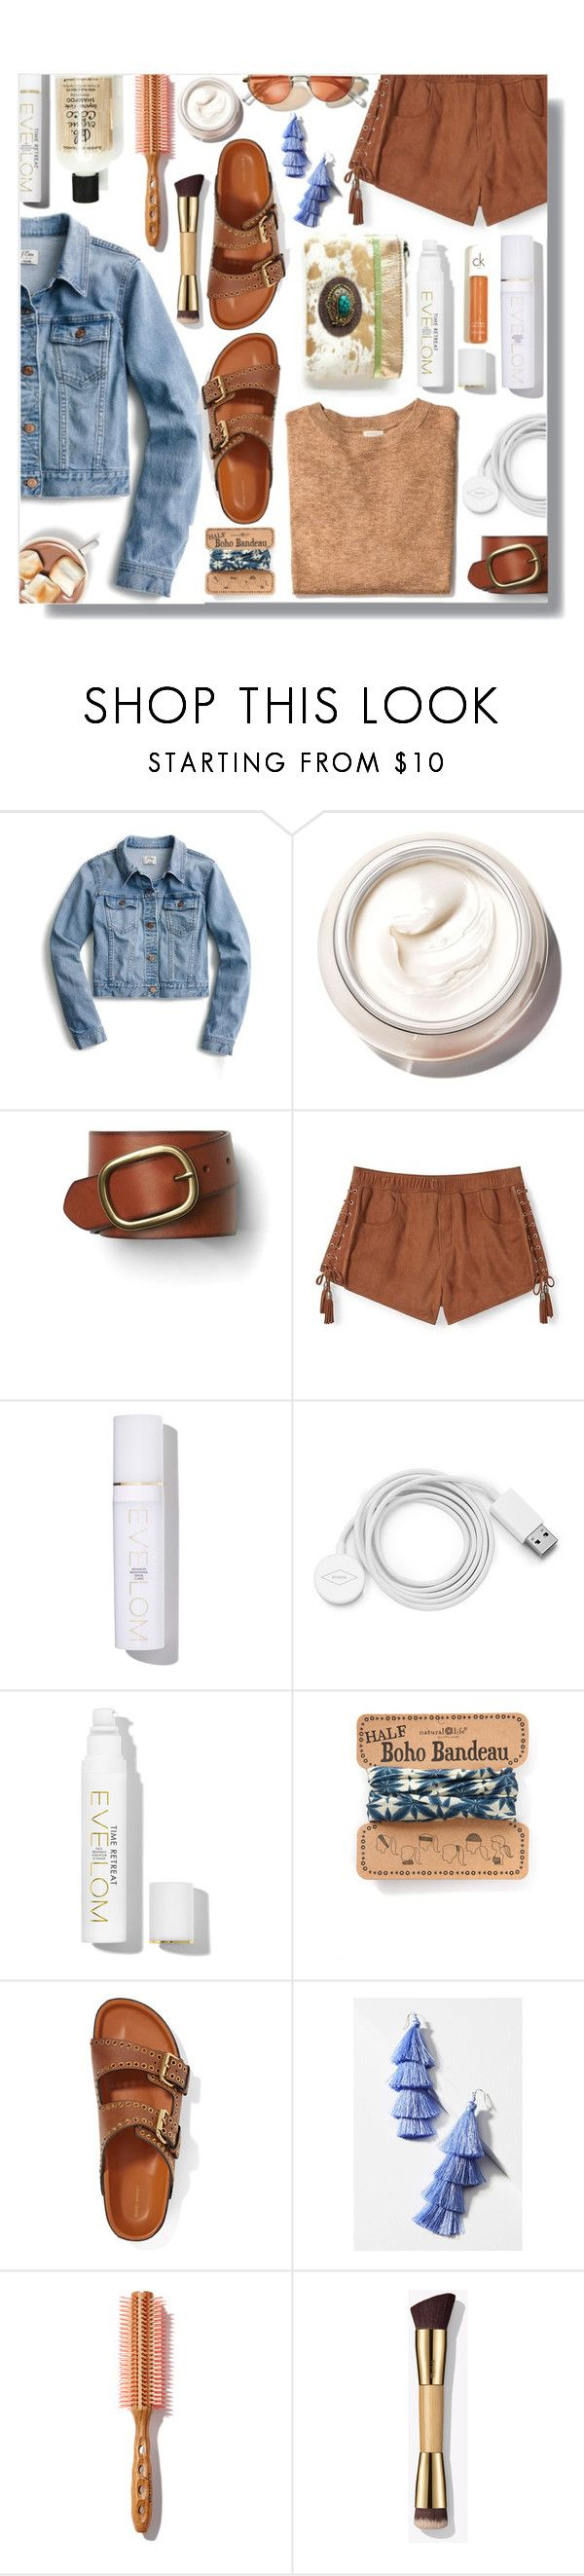 """""""Baby Vamos!"""" by peony-and-python ❤ liked on Polyvore featuring J.Crew, Bobbi Brown Cosmetics, Gap, Rebecca Minkoff, Eve Lom, FOSSIL, Natural Life, Isabel Marant, Deepa Gurnani and vintage"""